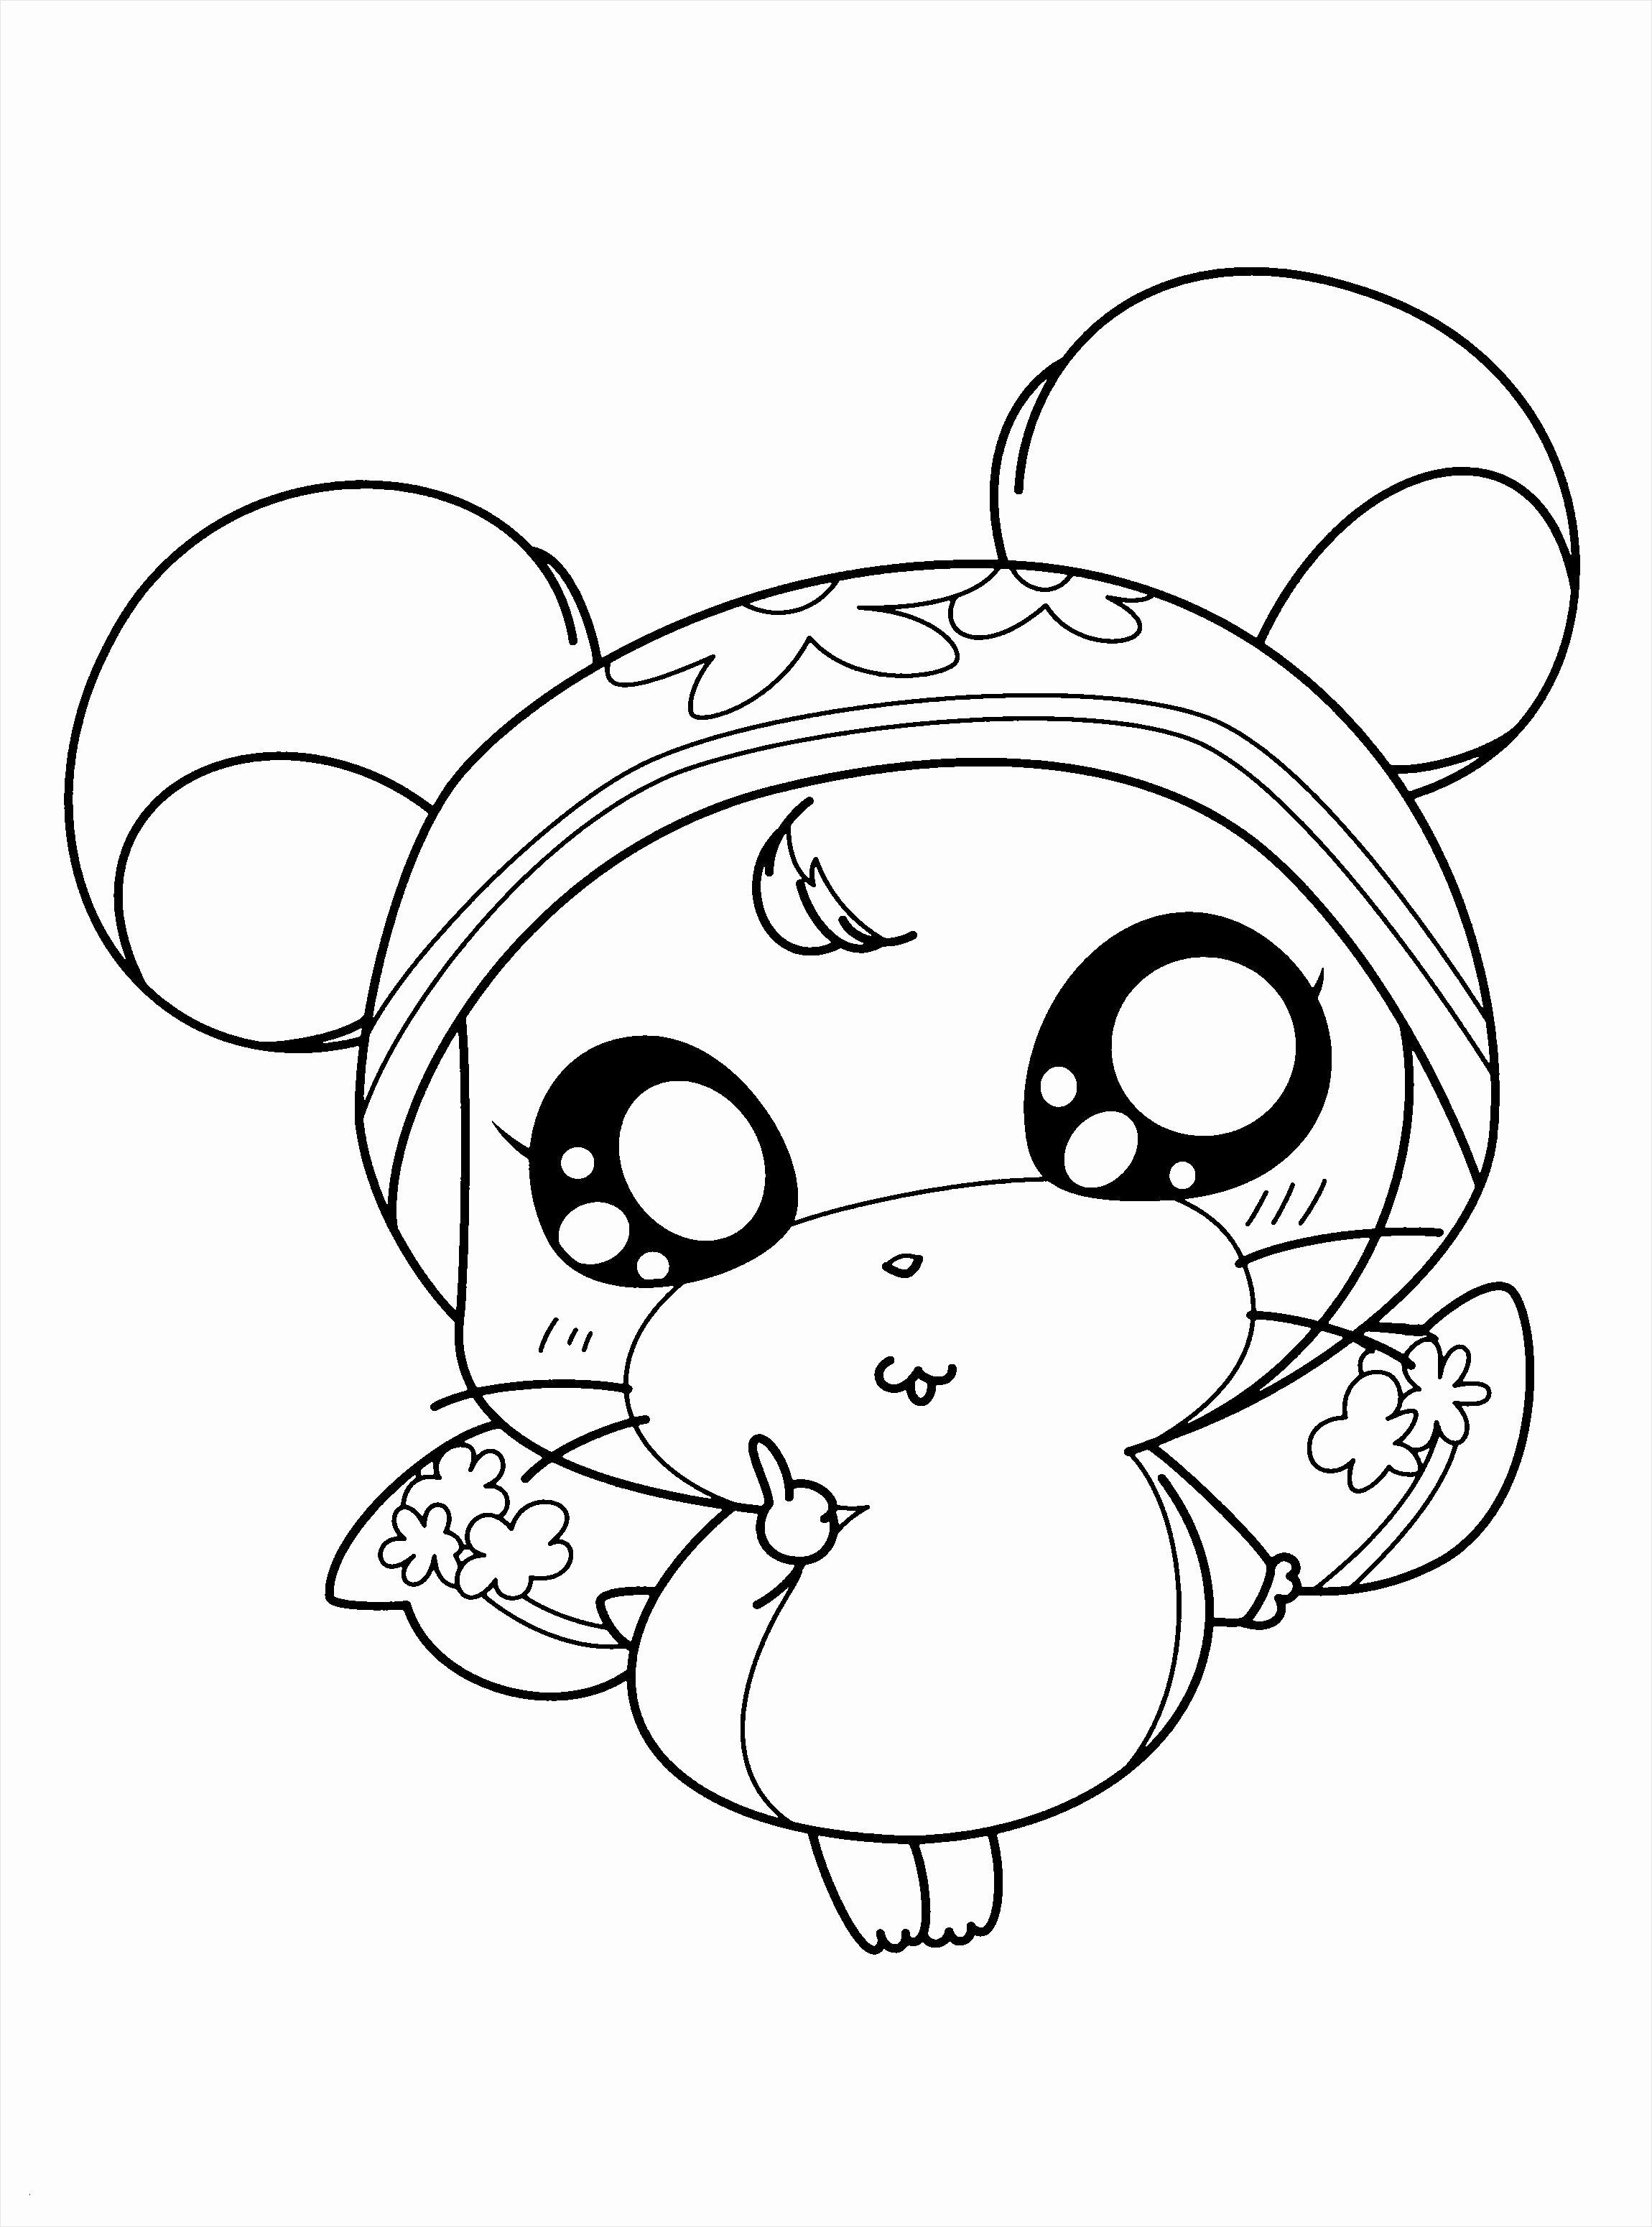 Coloring Pages On Monkeys Lovely Beautiful Baby Monkey